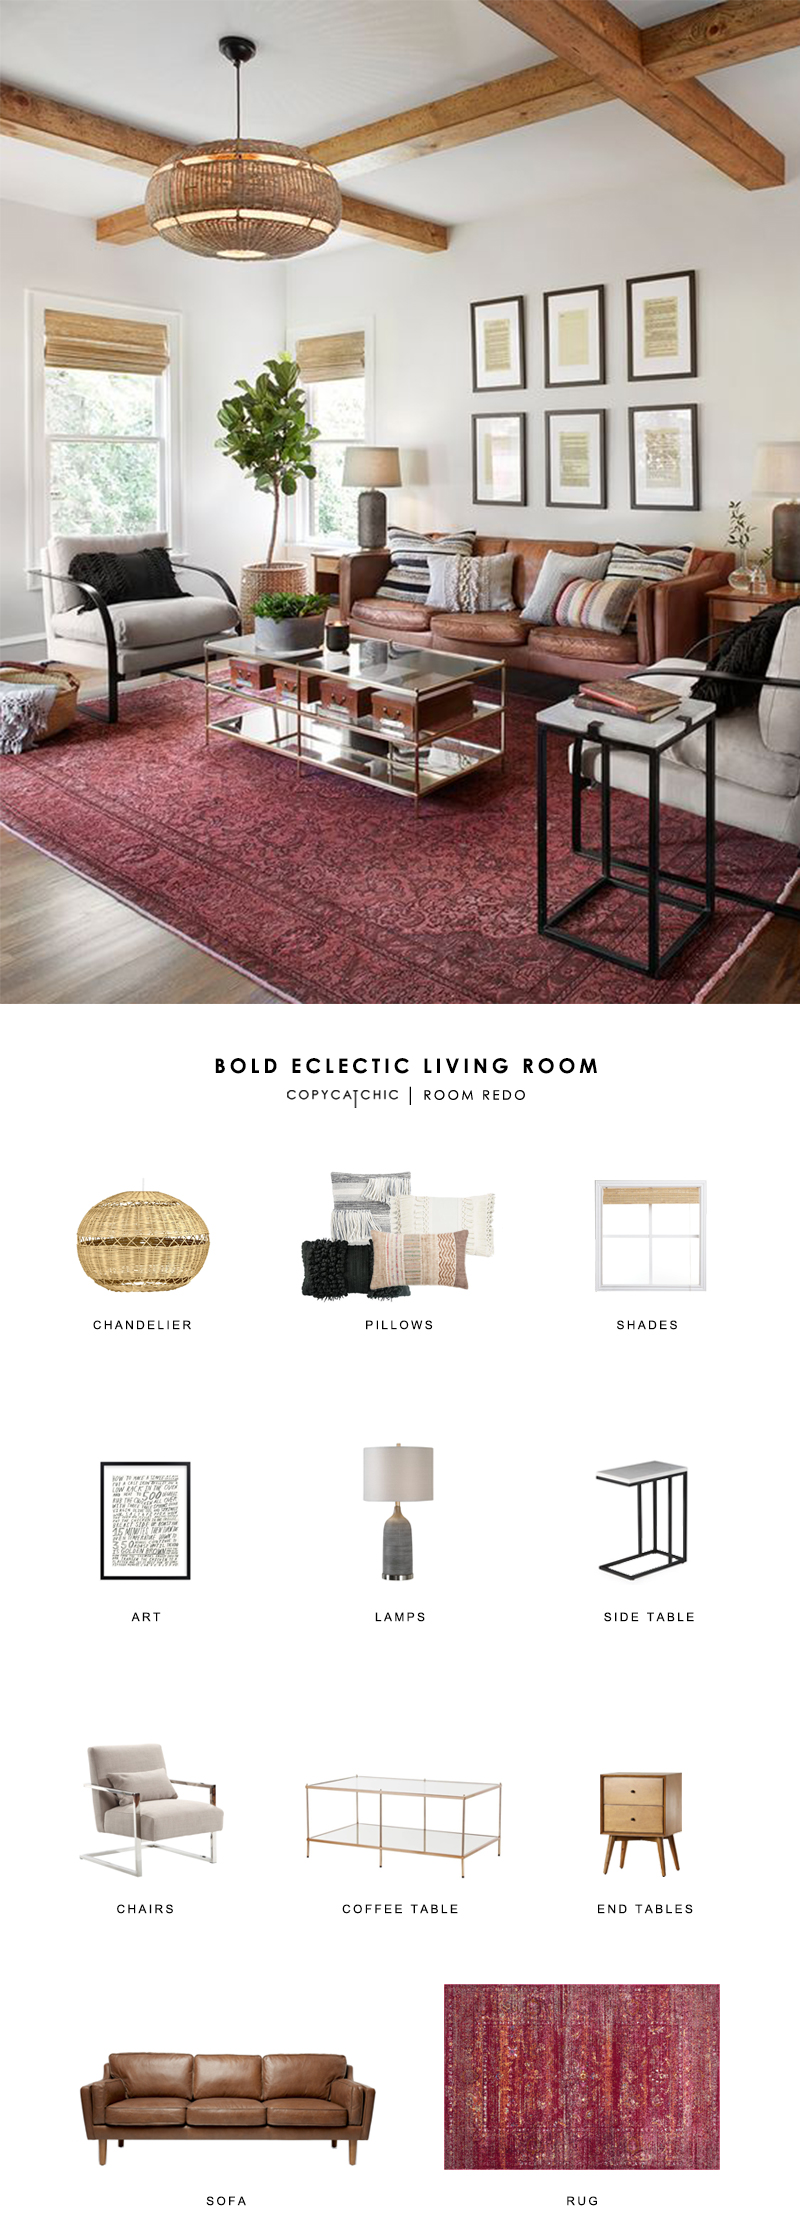 Room Redo | Bold Eclectic Living Room - copycatchic